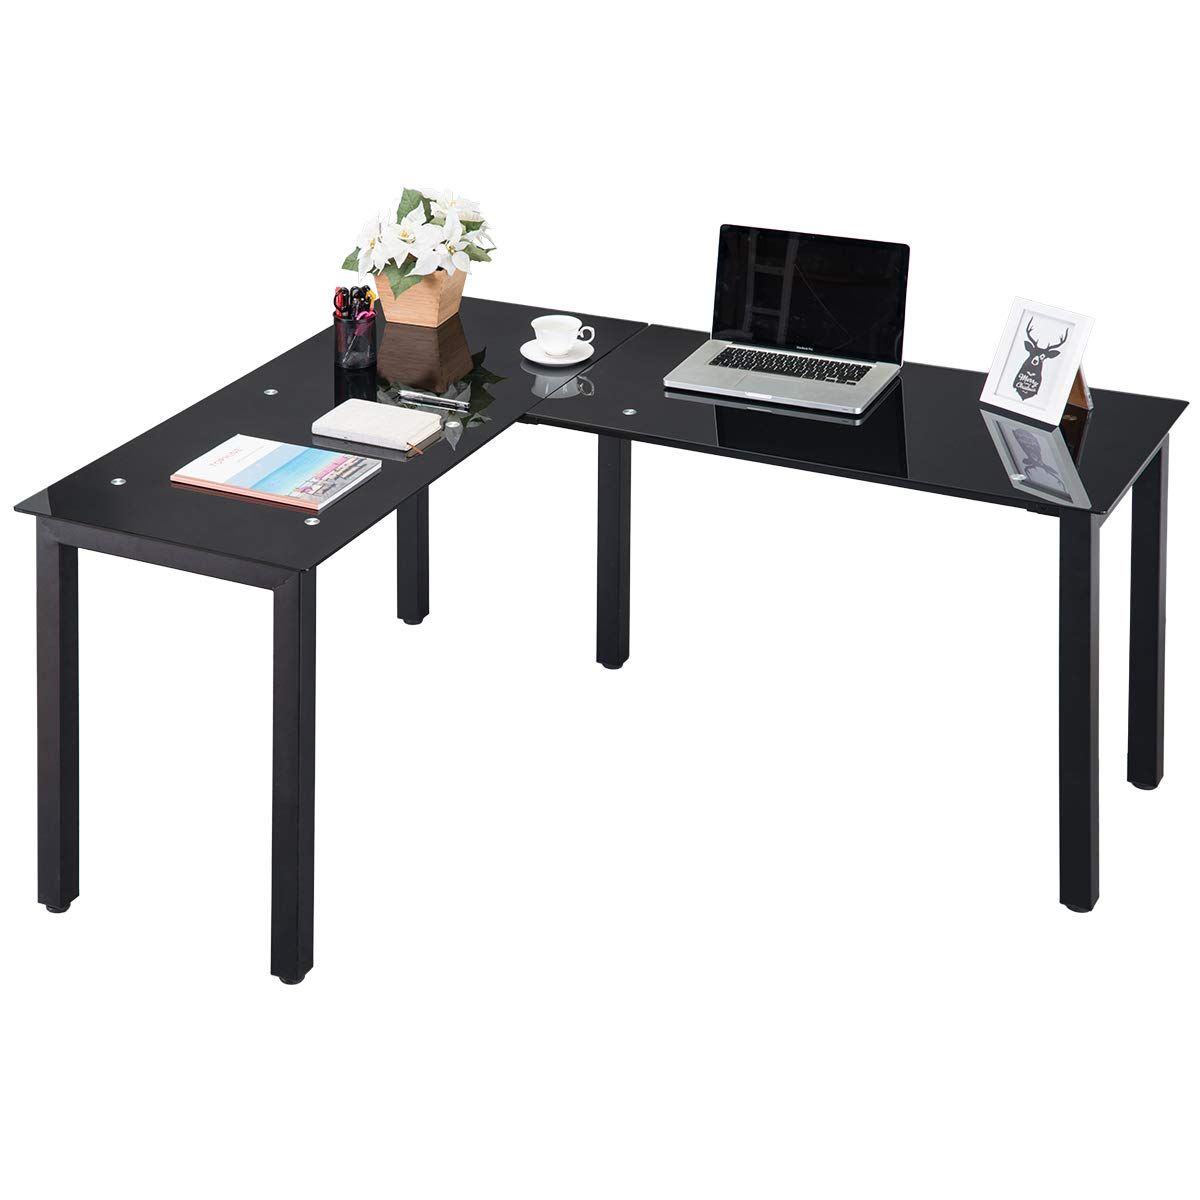 ModernLuxe L Shaped Desk Home Office Corner Computer Desk with Tempered Glass Top Metal Frame Gaming Table Workstation